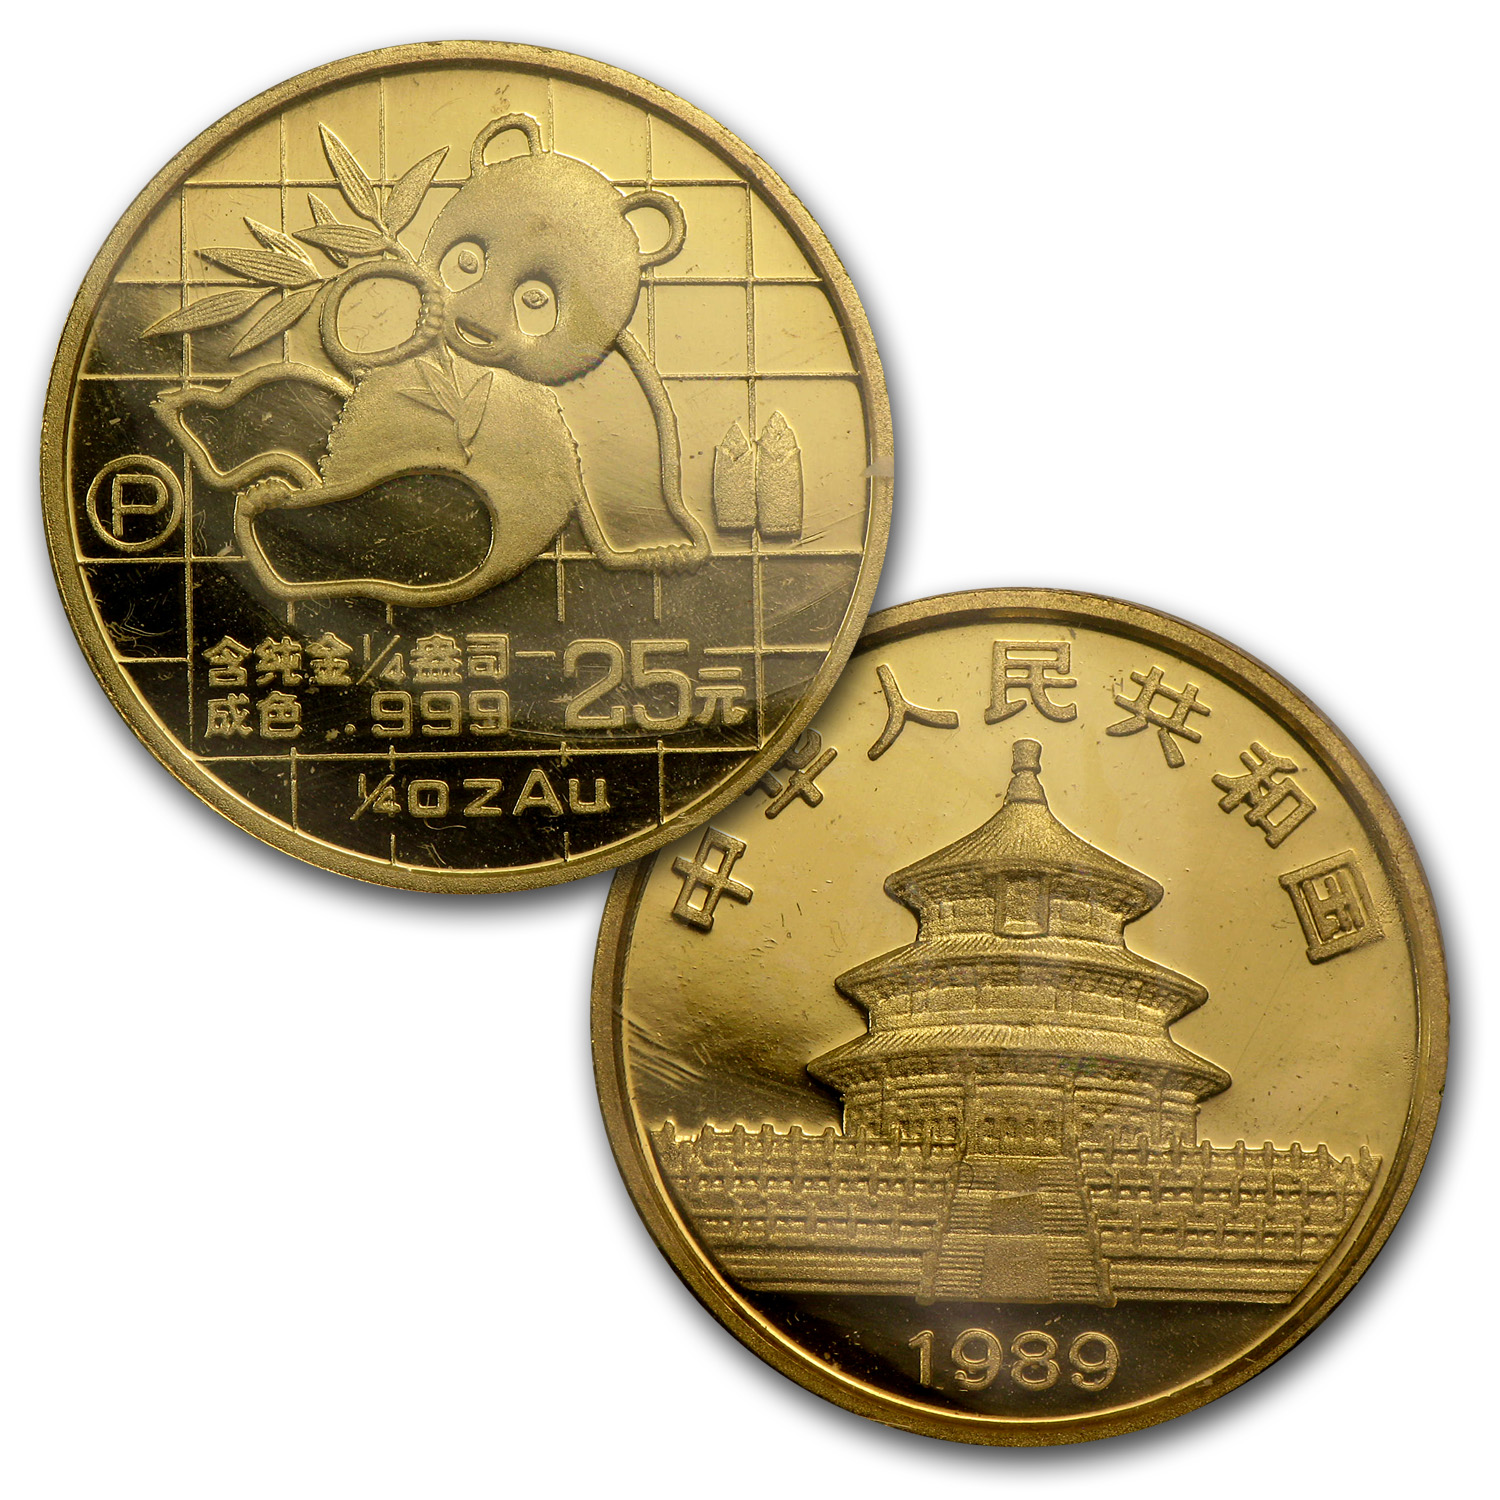 1989 China 5-Coin Gold Panda Proof Set (In Original Box)